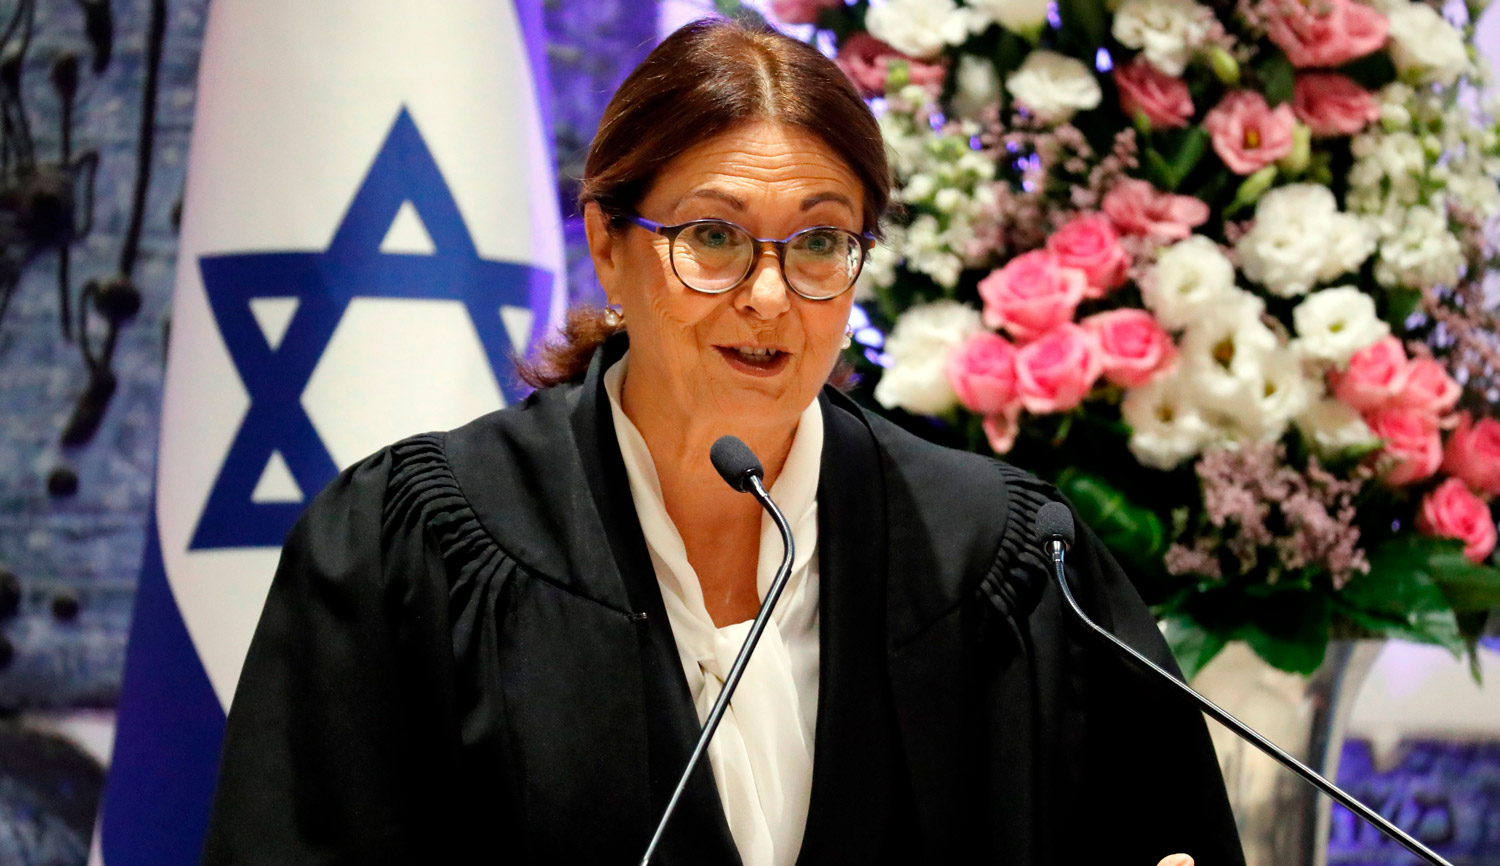 Israel Supreme Court Chief Justice Esther Hayut during her swearing-in ceremony on October 26, 2017. THOMAS COEX/AFP/Getty Images.